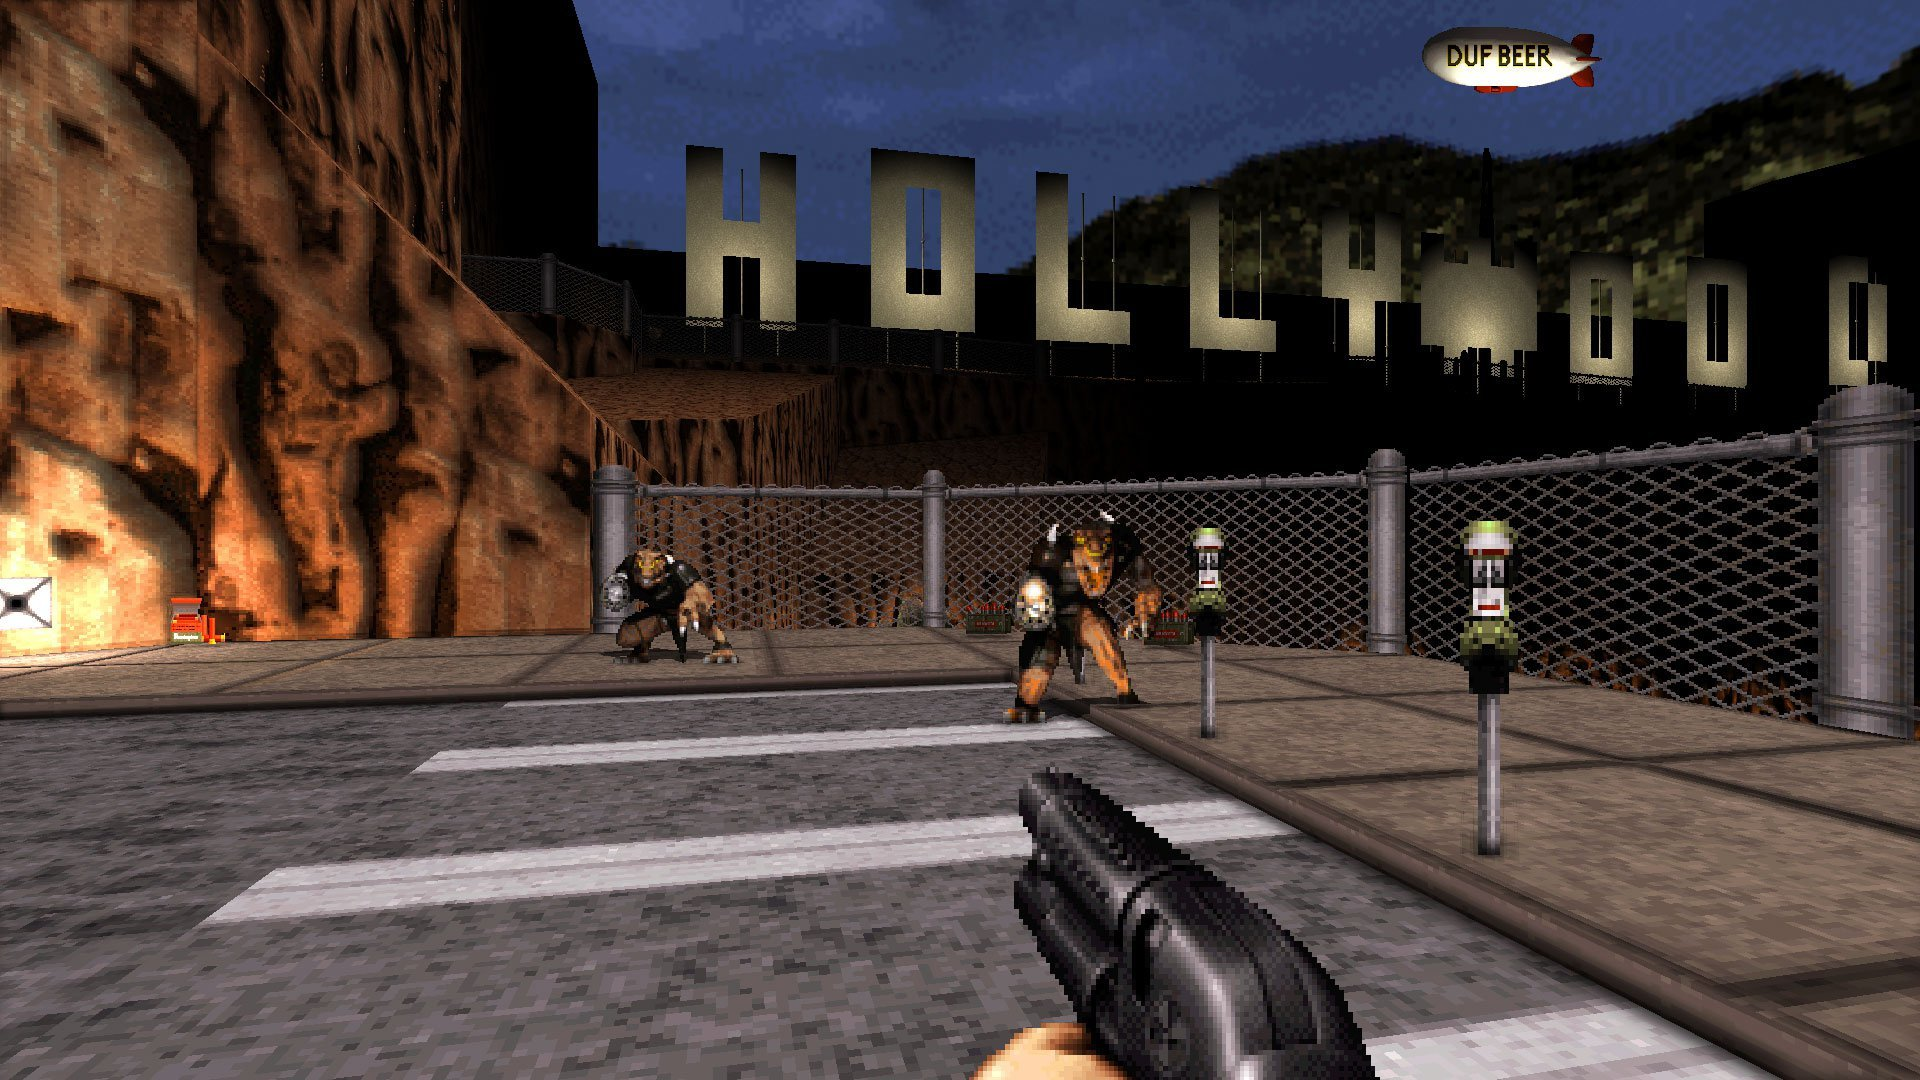 The Duke Nukem 3D remake is the best version of an iconic game